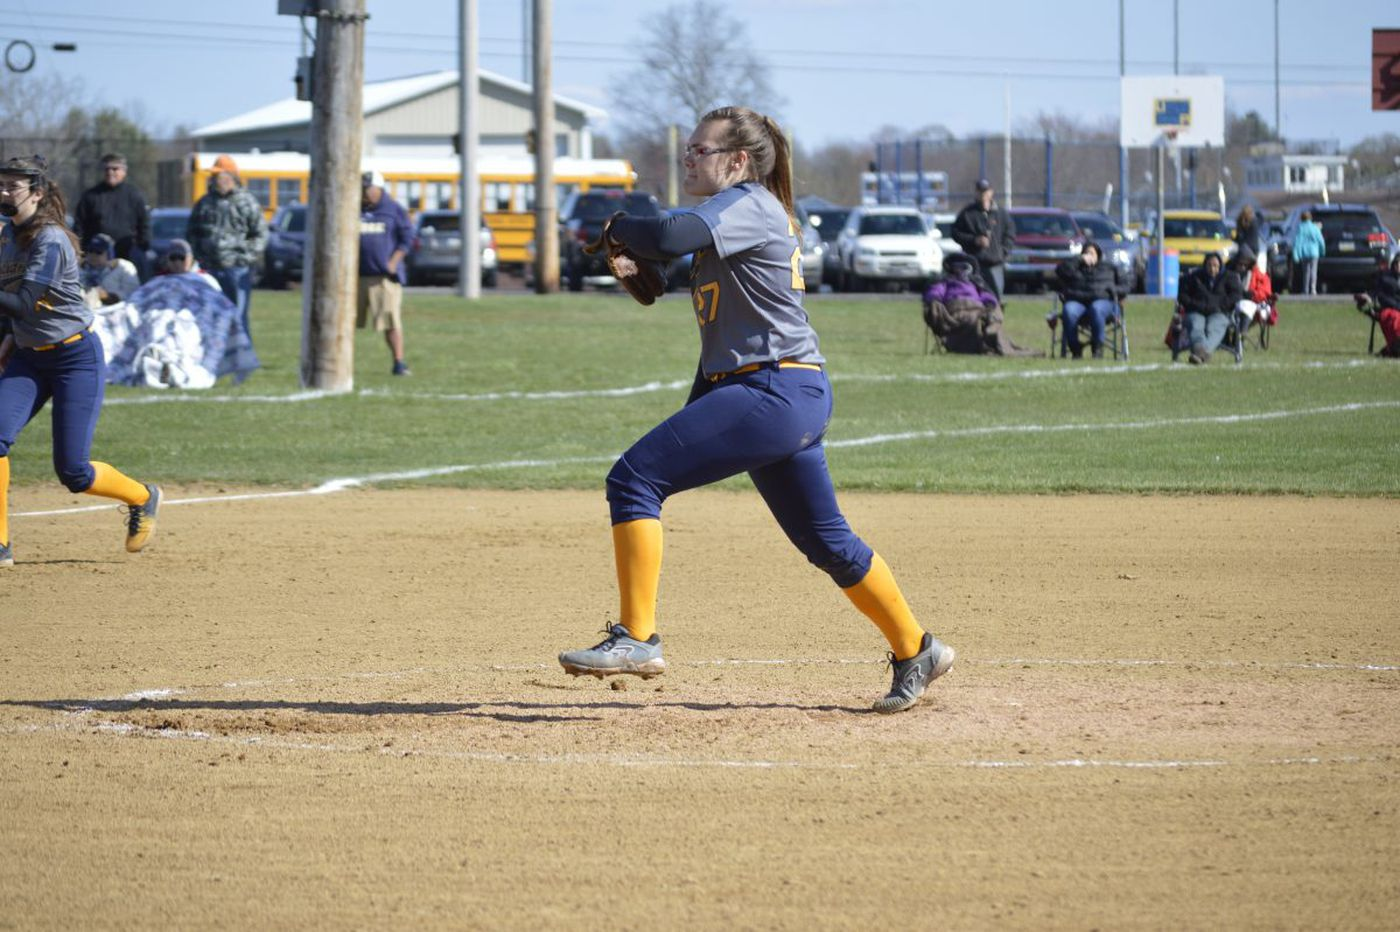 PIAA softball playoffs continue, and Central Bucks South, West Chester East and Upper Perkiomen look to make deep runs